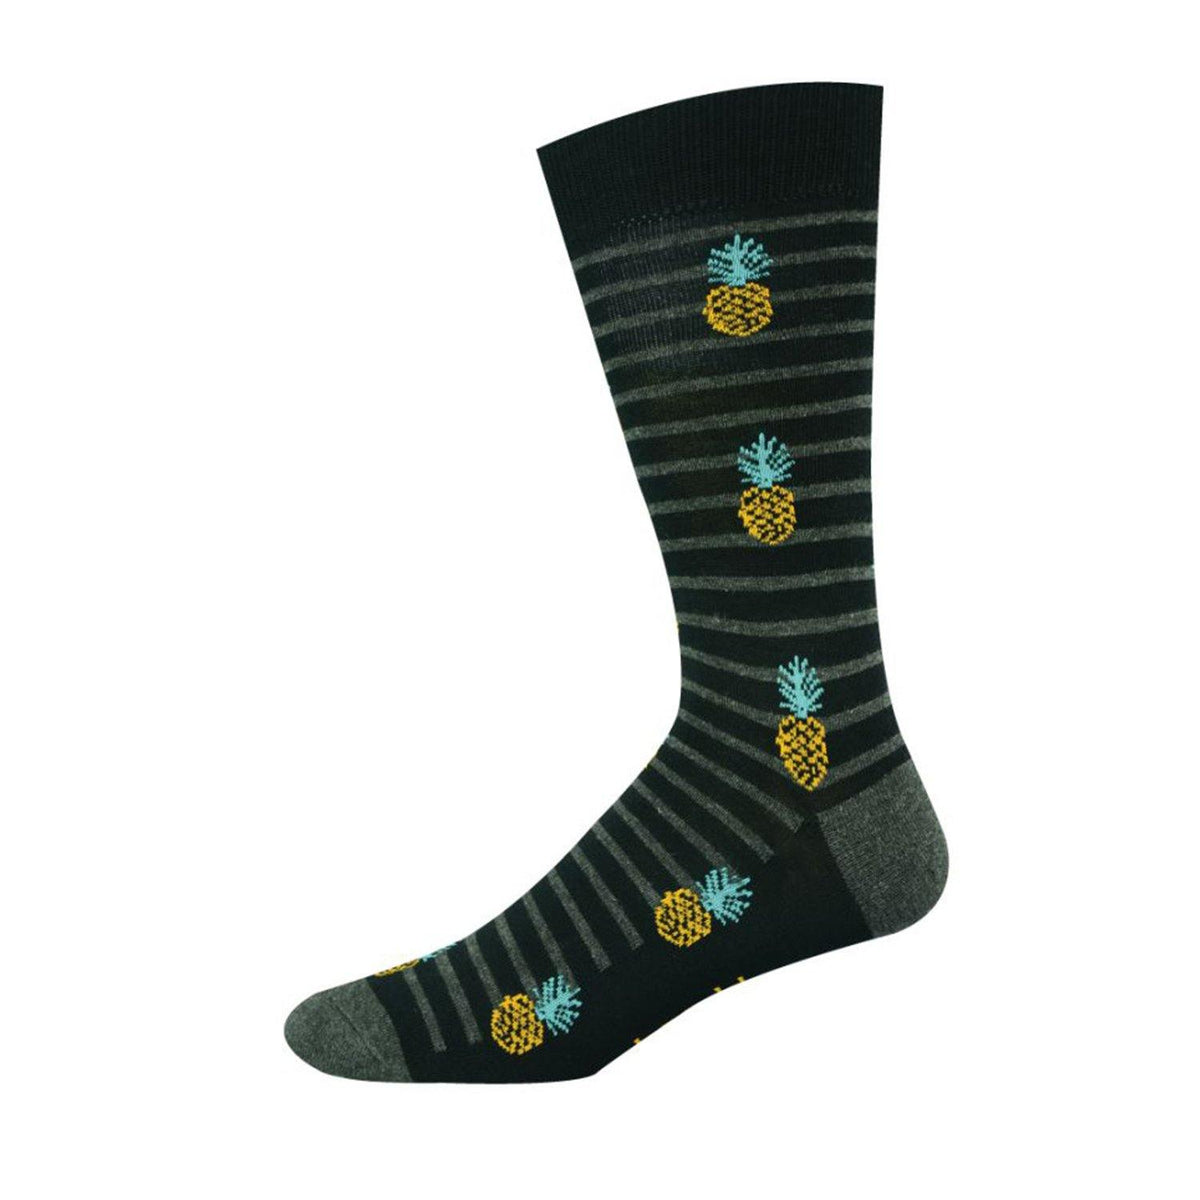 Bamboozld Men's Health (No Elastaic Top) Socks